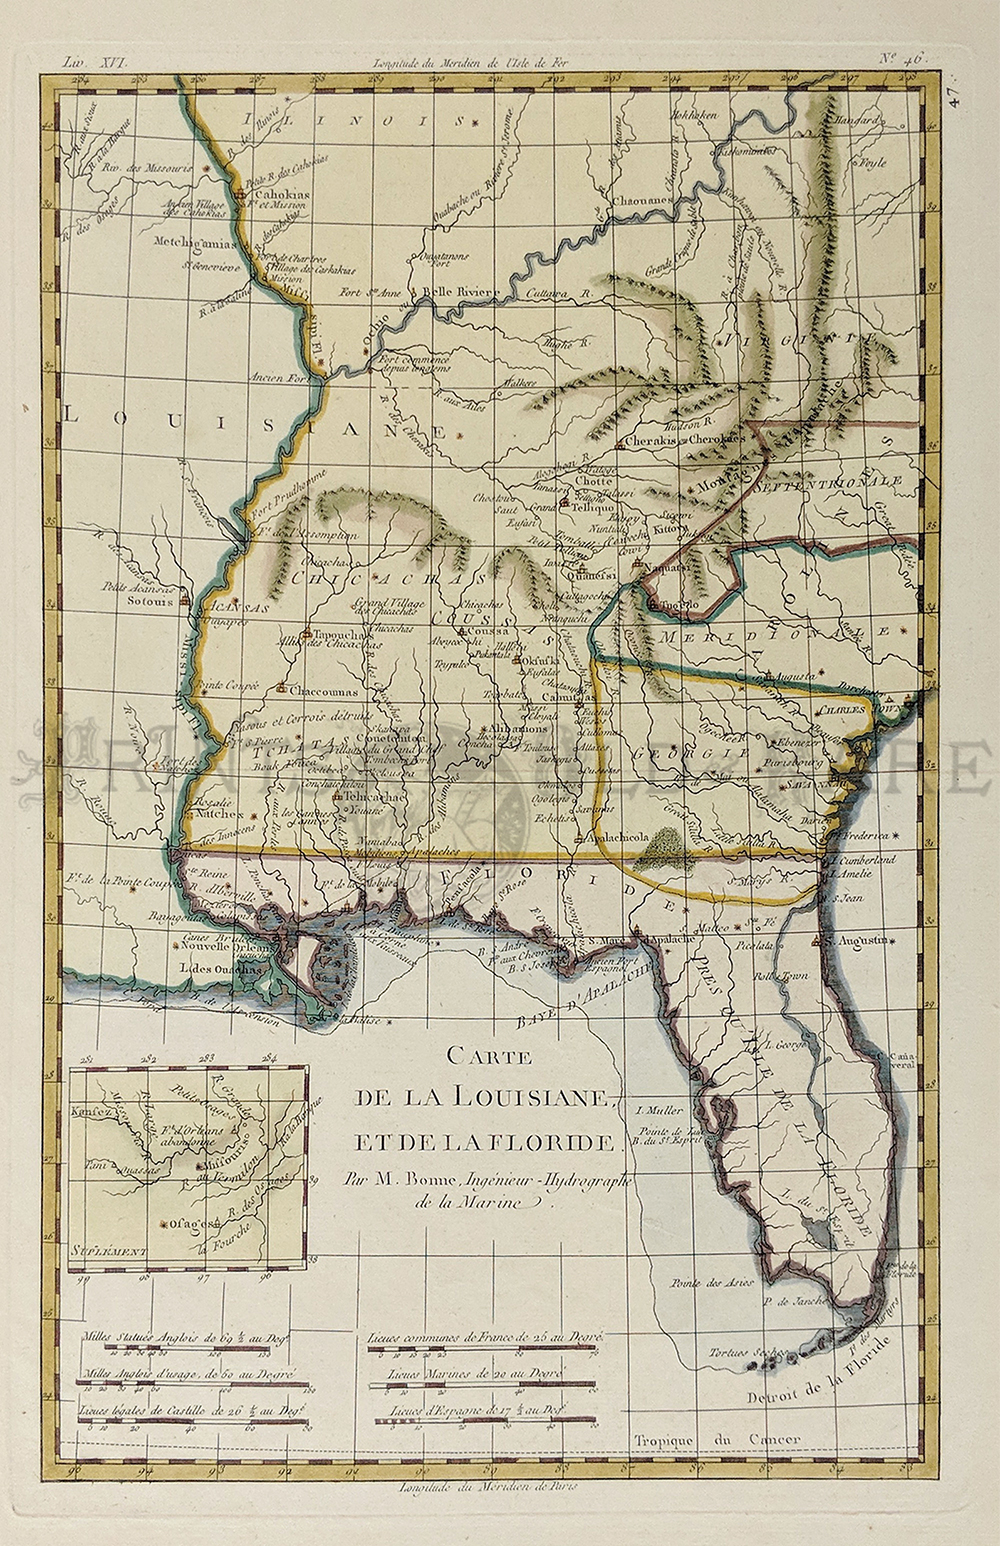 Prints old rare georgia antique maps prints 1780 hand colored copper engraved raynal and bonne map of louisiana florida and carolina map is named carte de ha louisiane et de la florida gumiabroncs Gallery